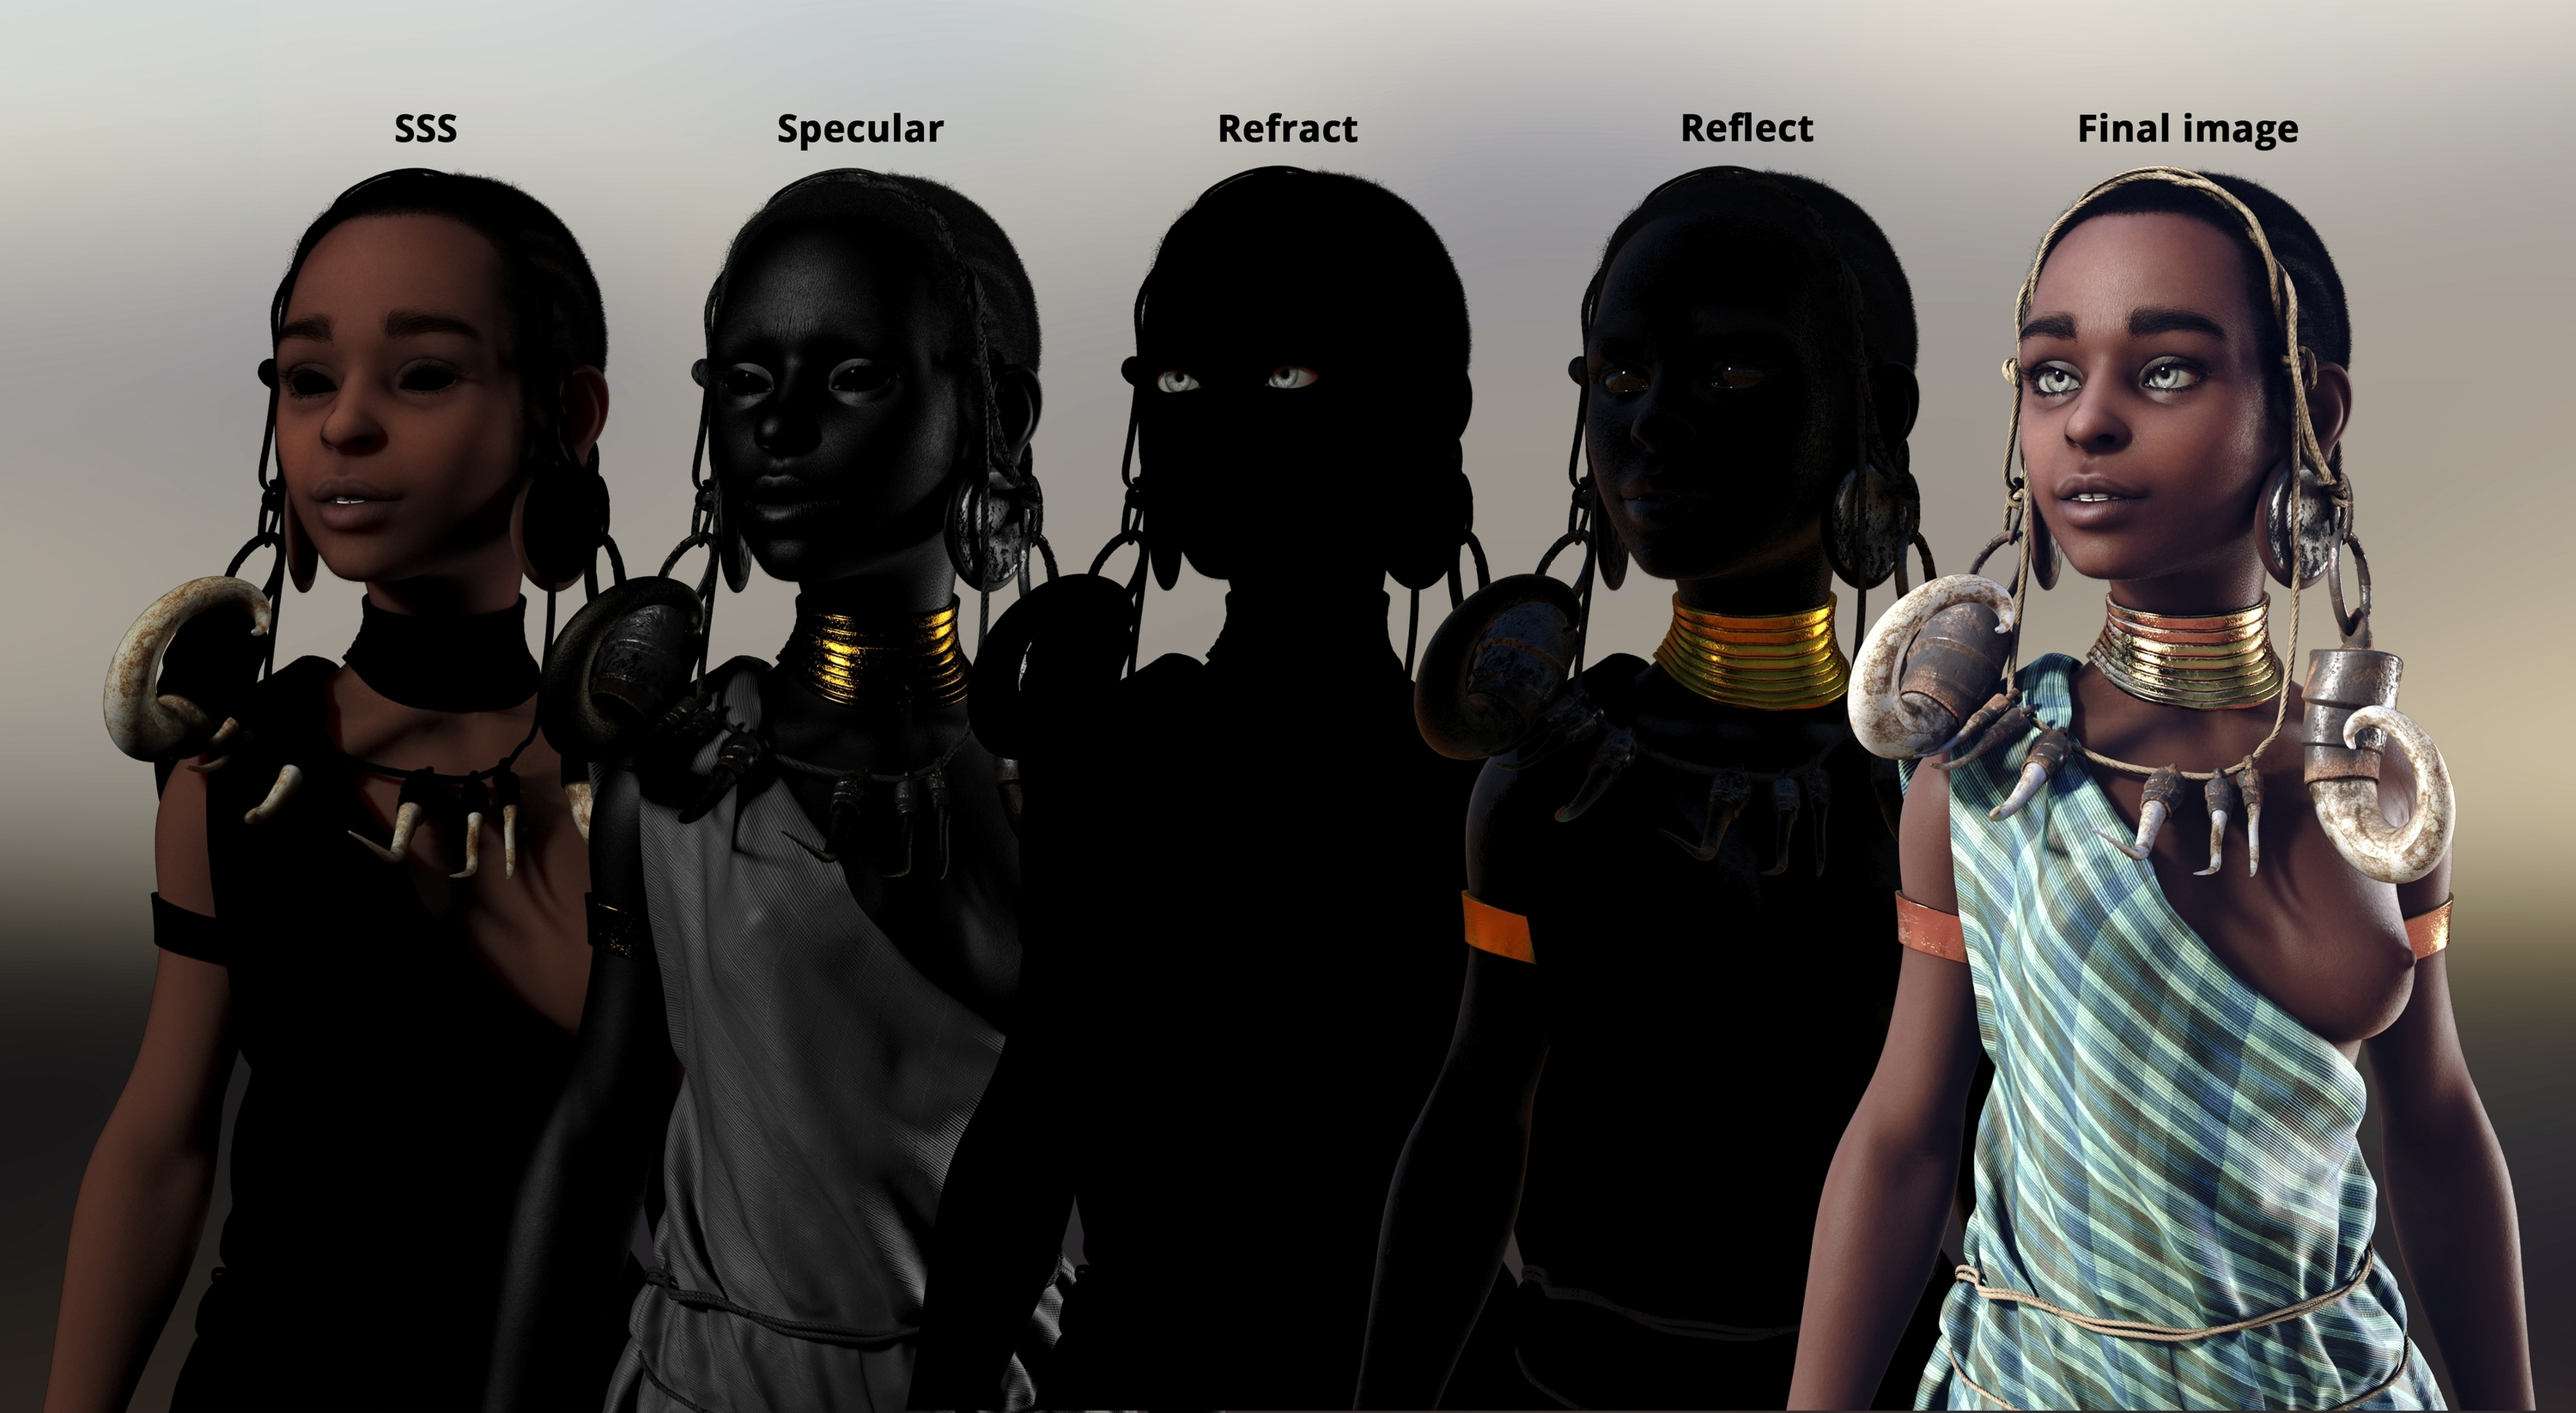 Final_Arte_Mursi_RenderPass001.jpg